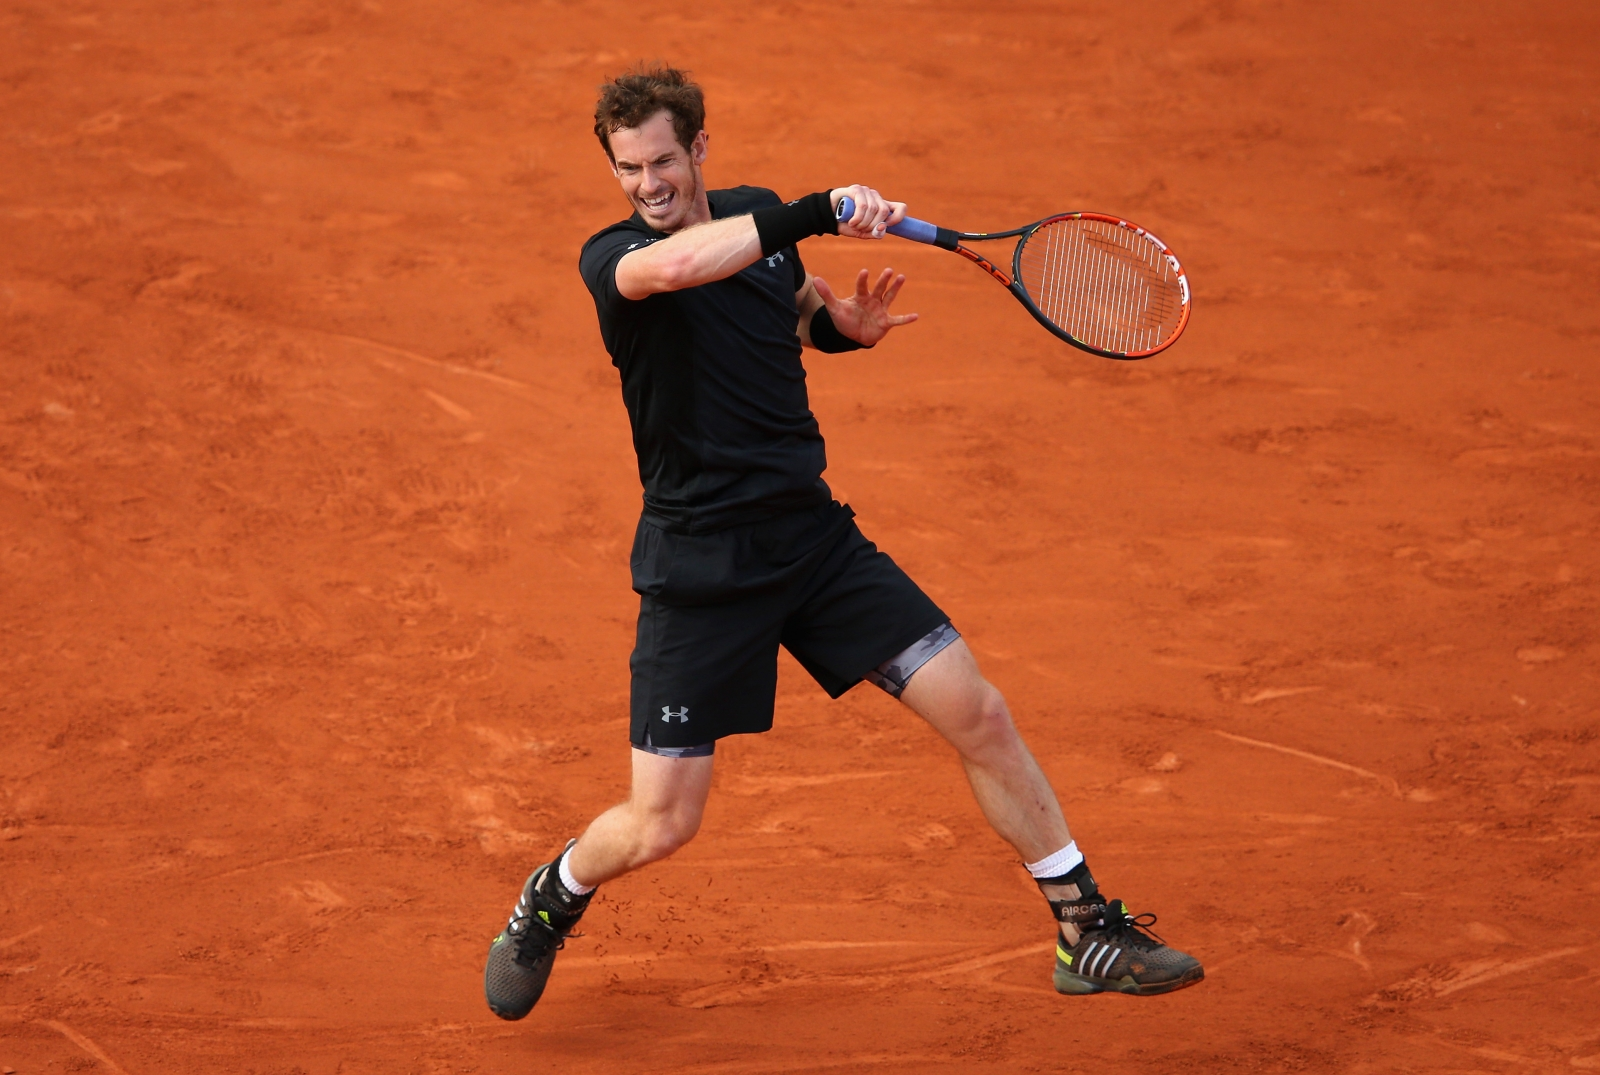 andy murray v nick kyrgios  roland garros 2015  where to watch live  preview and betting odds